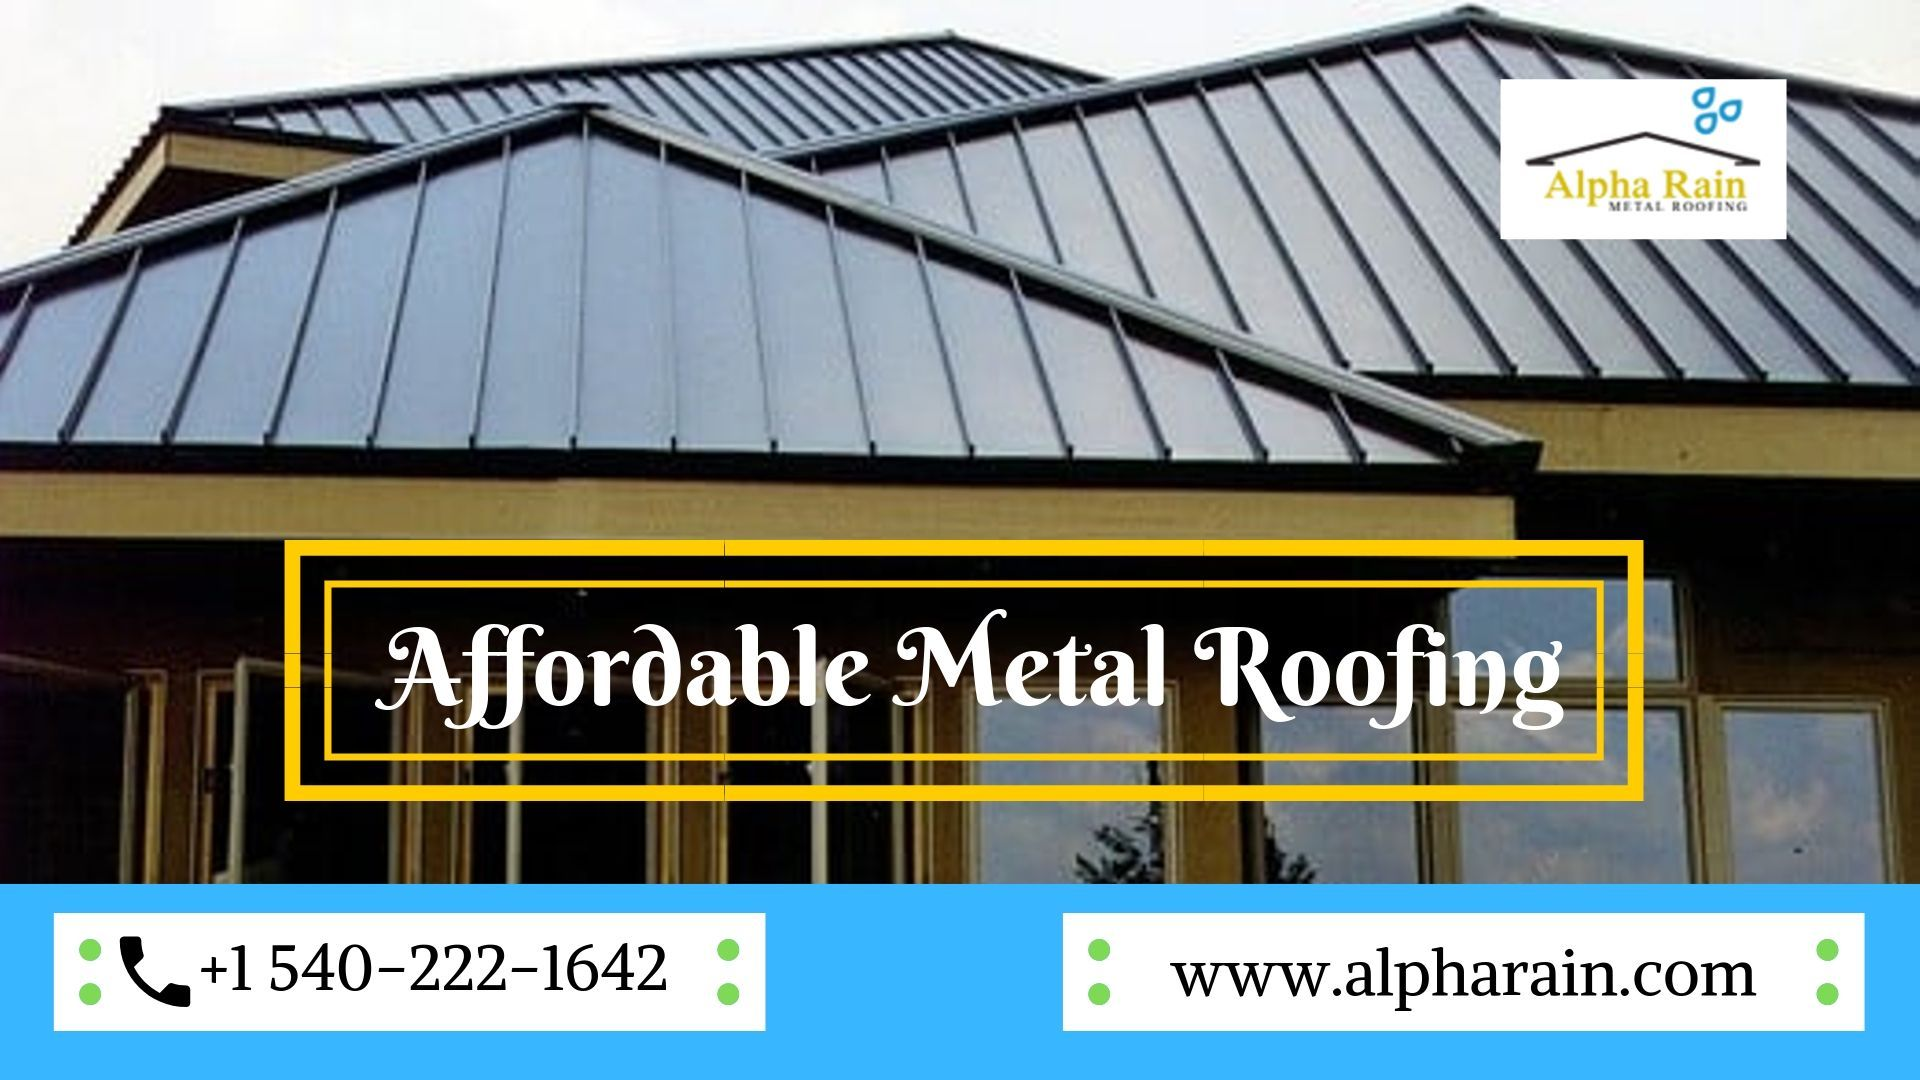 Affordable Metal Roofing Services At Alpha Rain Metal Roof Roofing Services Standing Seam Metal Roof